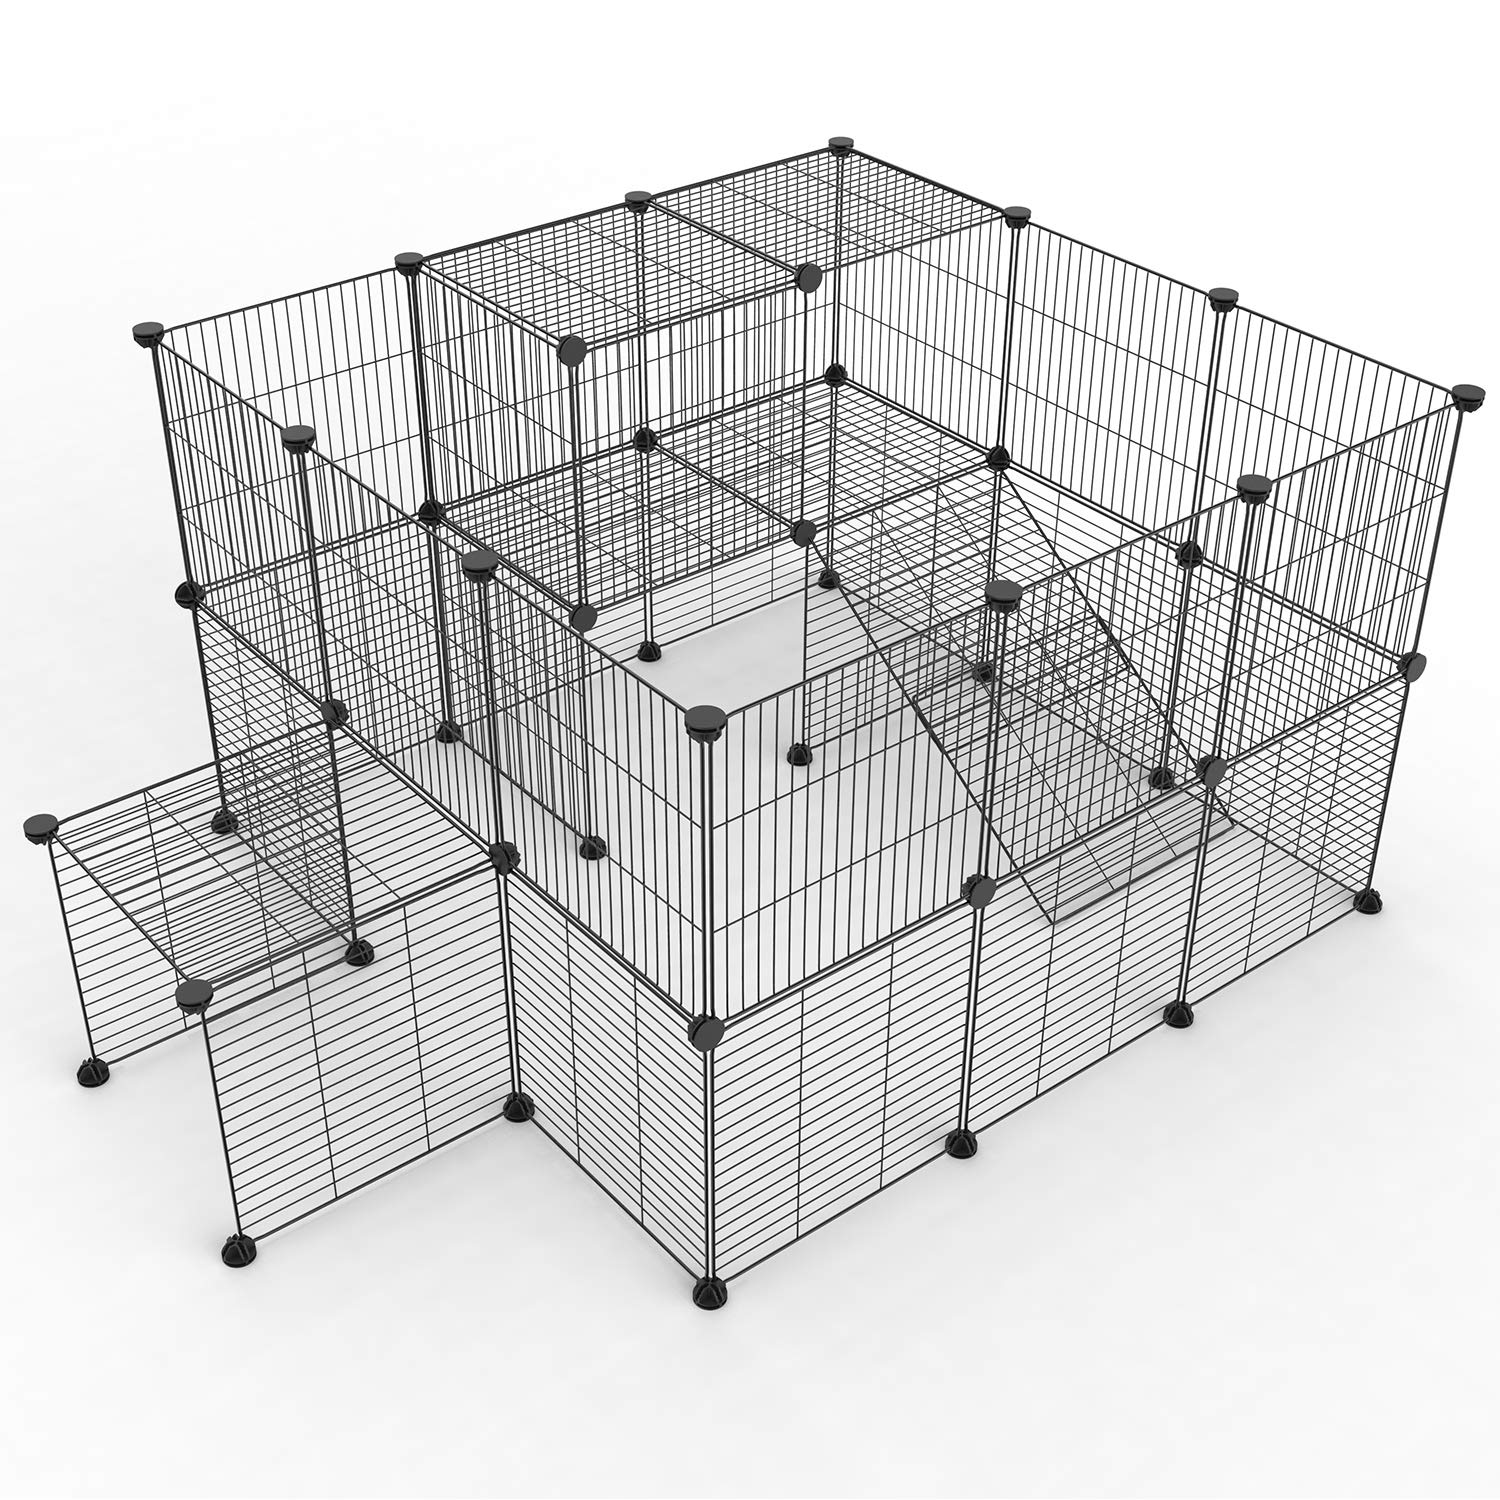 Tespo Pet Playpen, Small Animal Cage Indoor Portable Metal Wire Yard Fence for Small Animals, Guinea Pigs, Rabbits Kennel Crate Fence Tent (Black,36 Panels Upgrade) by Tespo (Image #2)